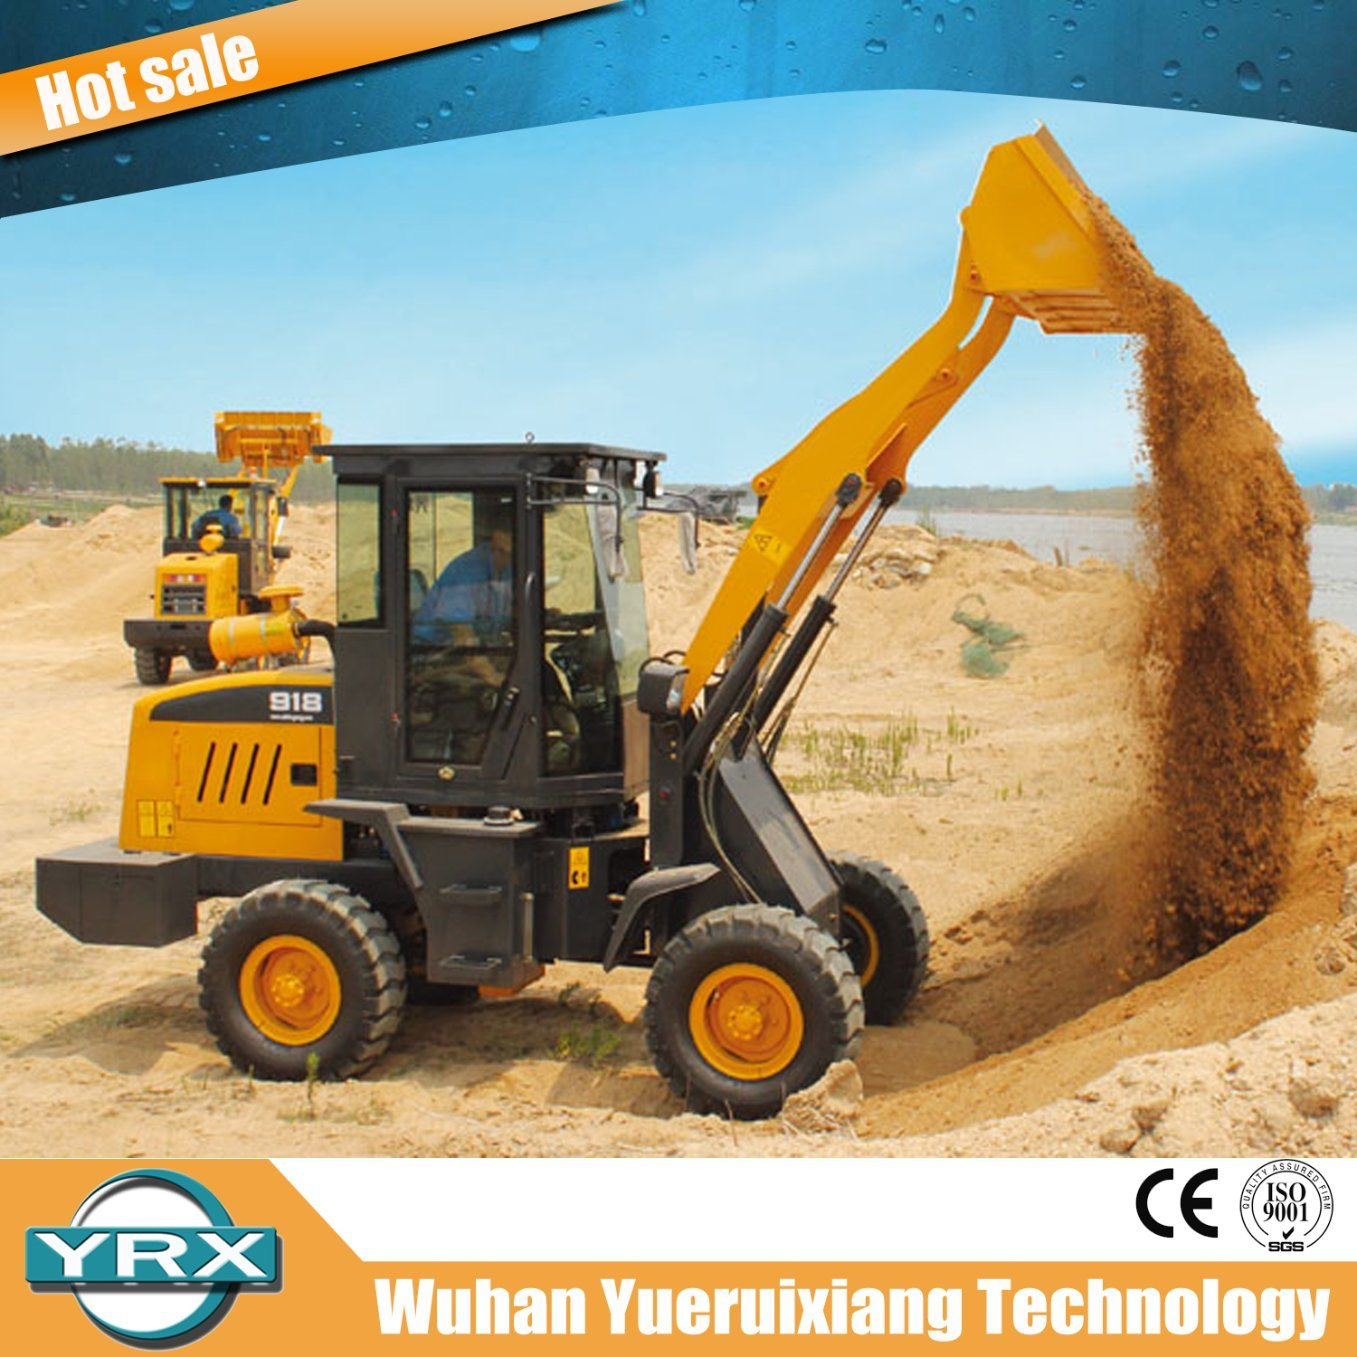 50HP 1.8t Multifunctional Mini Wheel Loader